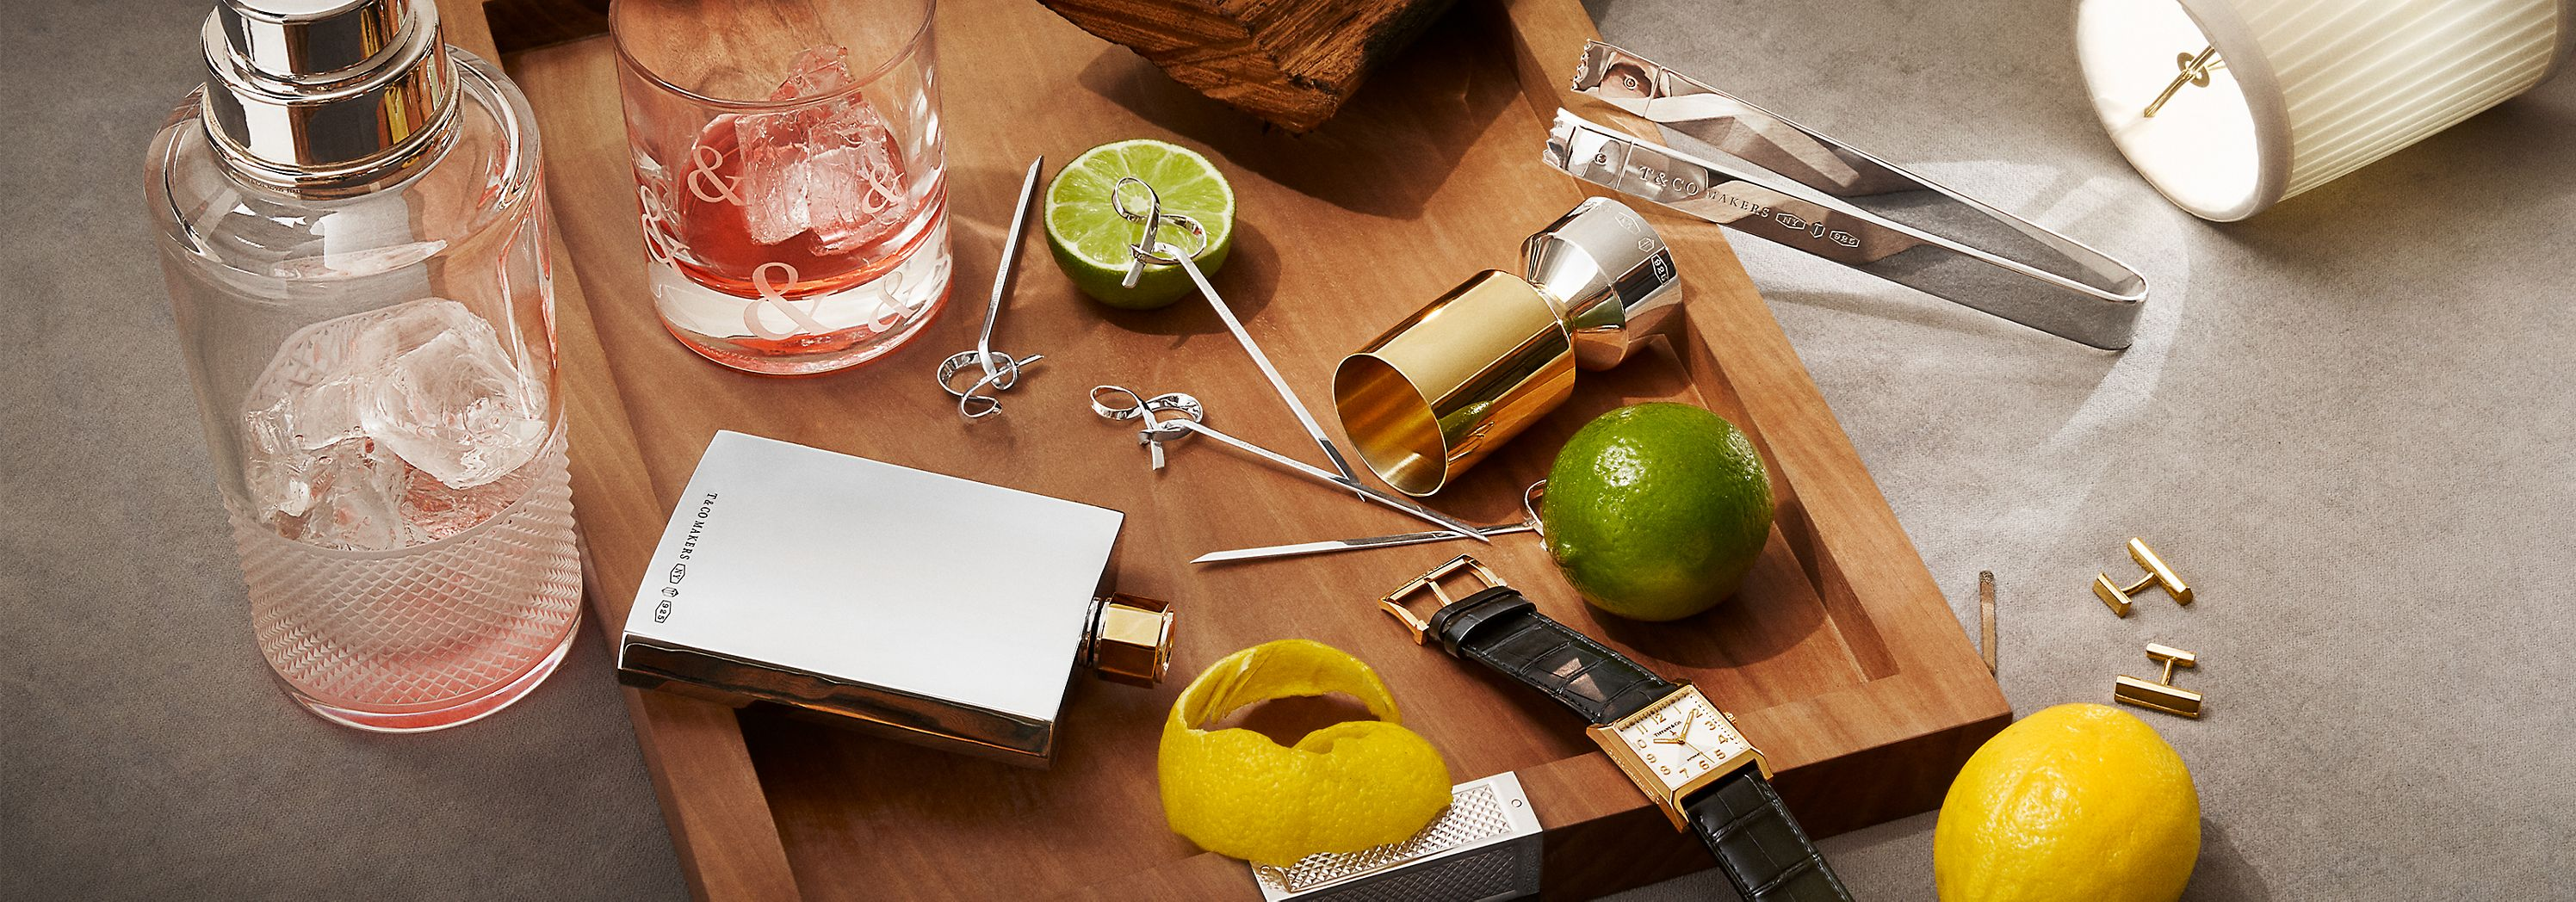 Tiffany & Co.'s Bar & Cocktail Essentials